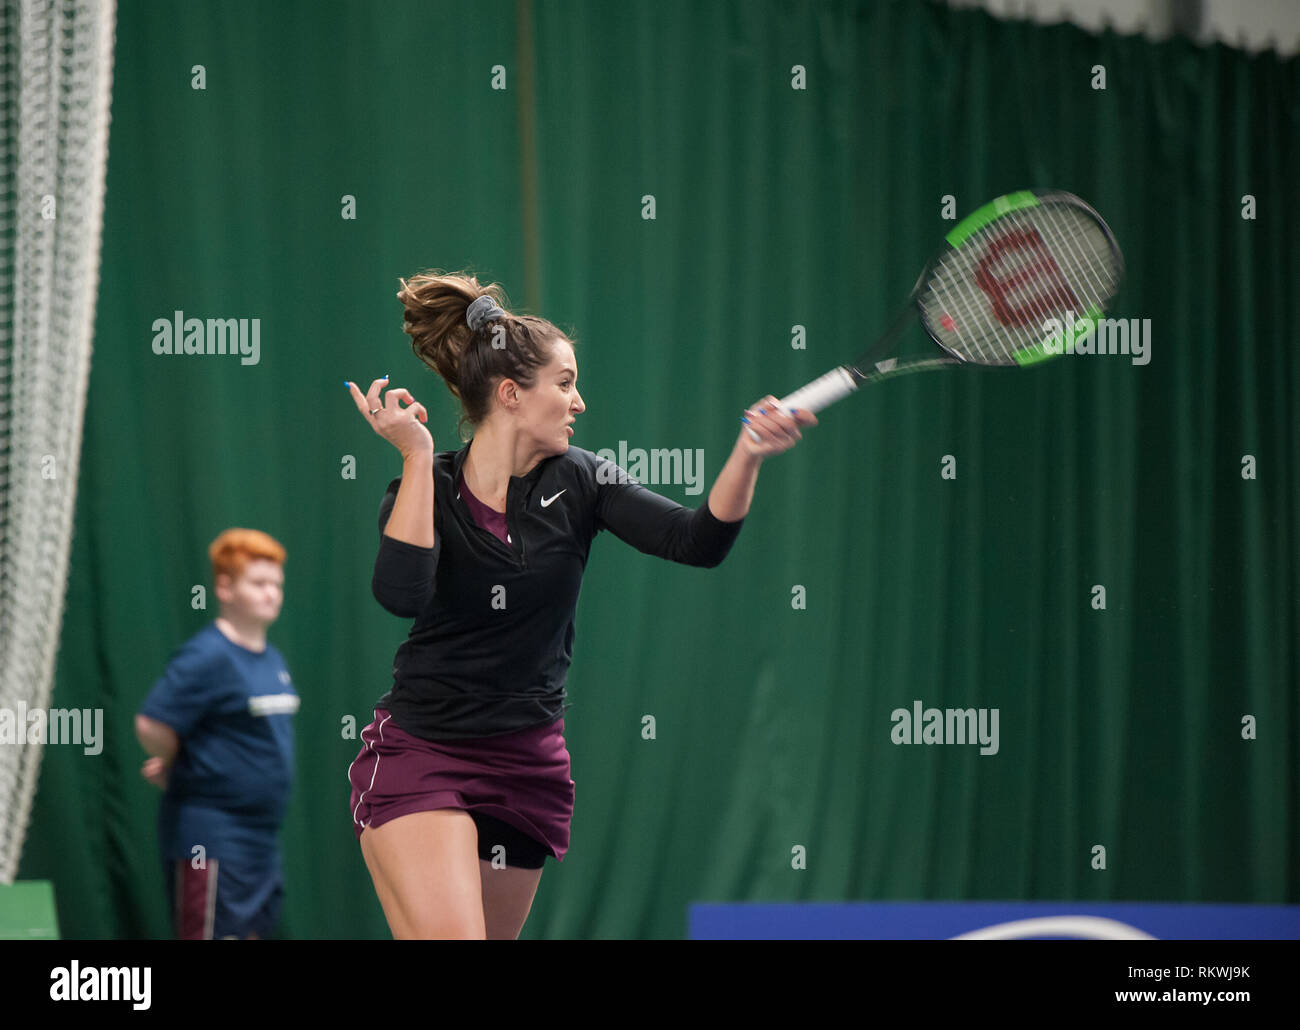 Shrewsbury, Shropshire, UK. 12th February, 2019. Laura Robson from Britain in the 1st round of the $60,000 event at The Shrewsbury Club on Tuesday 12th February 2019 playing against Kathinka Von Deichmann ( Liechtenstein) Credit: RICHARD DAWSON/Alamy Live News - Stock Image